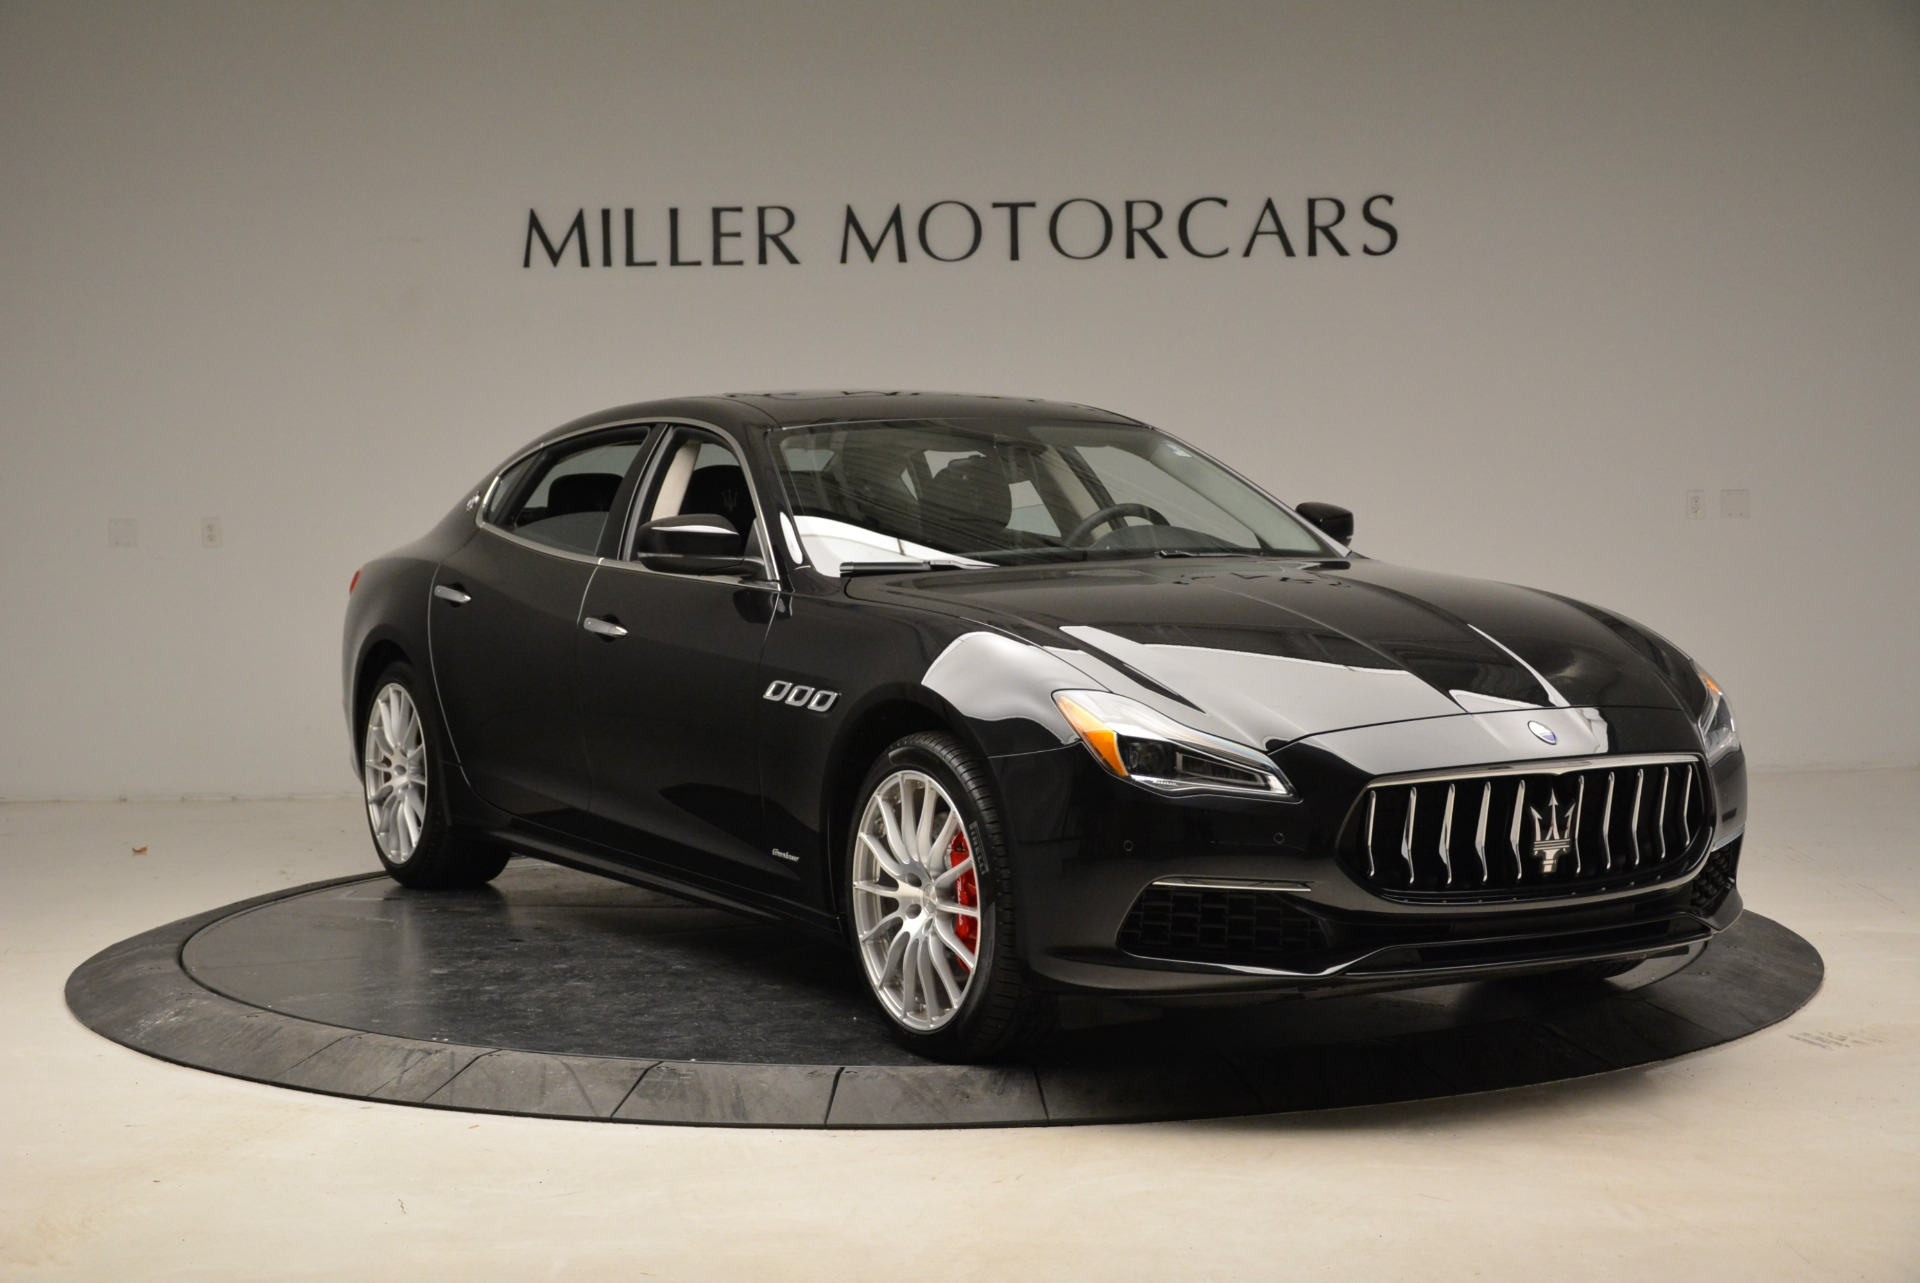 New 2018 Maserati Quattroporte S Q4 GranLusso For Sale In Greenwich, CT 1705_p11